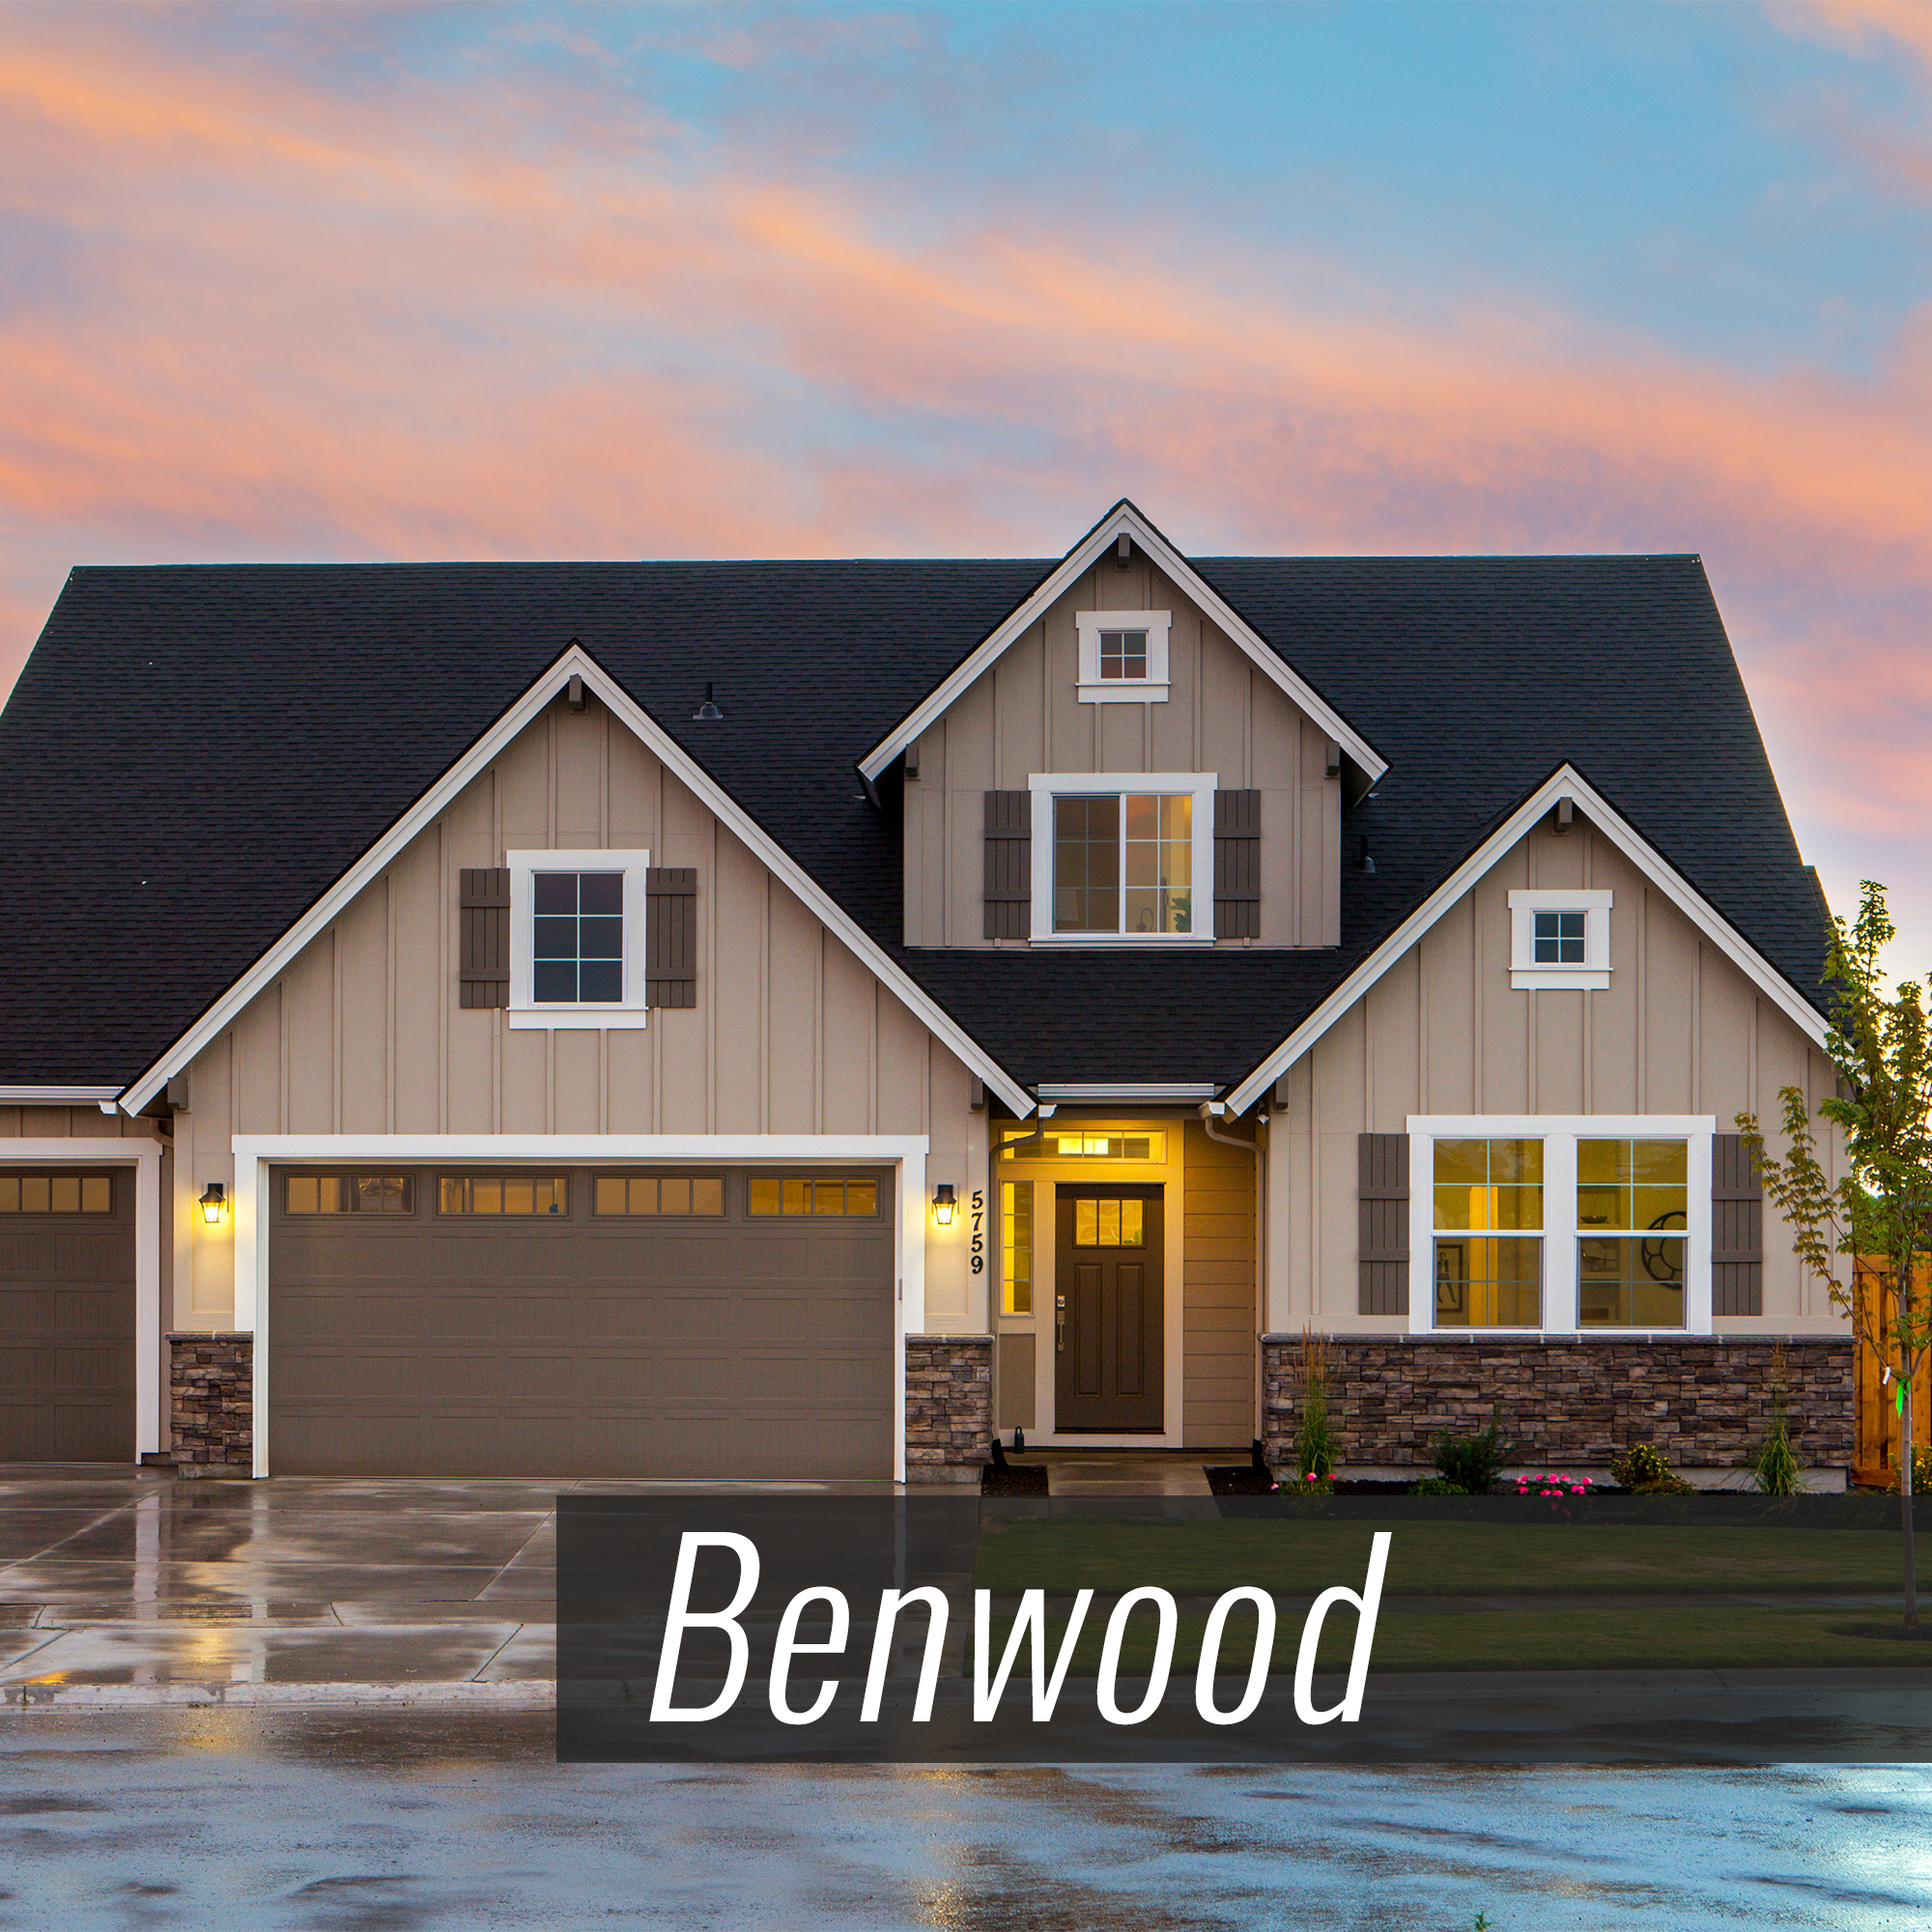 Homes for Sale in Benwood Subdivision